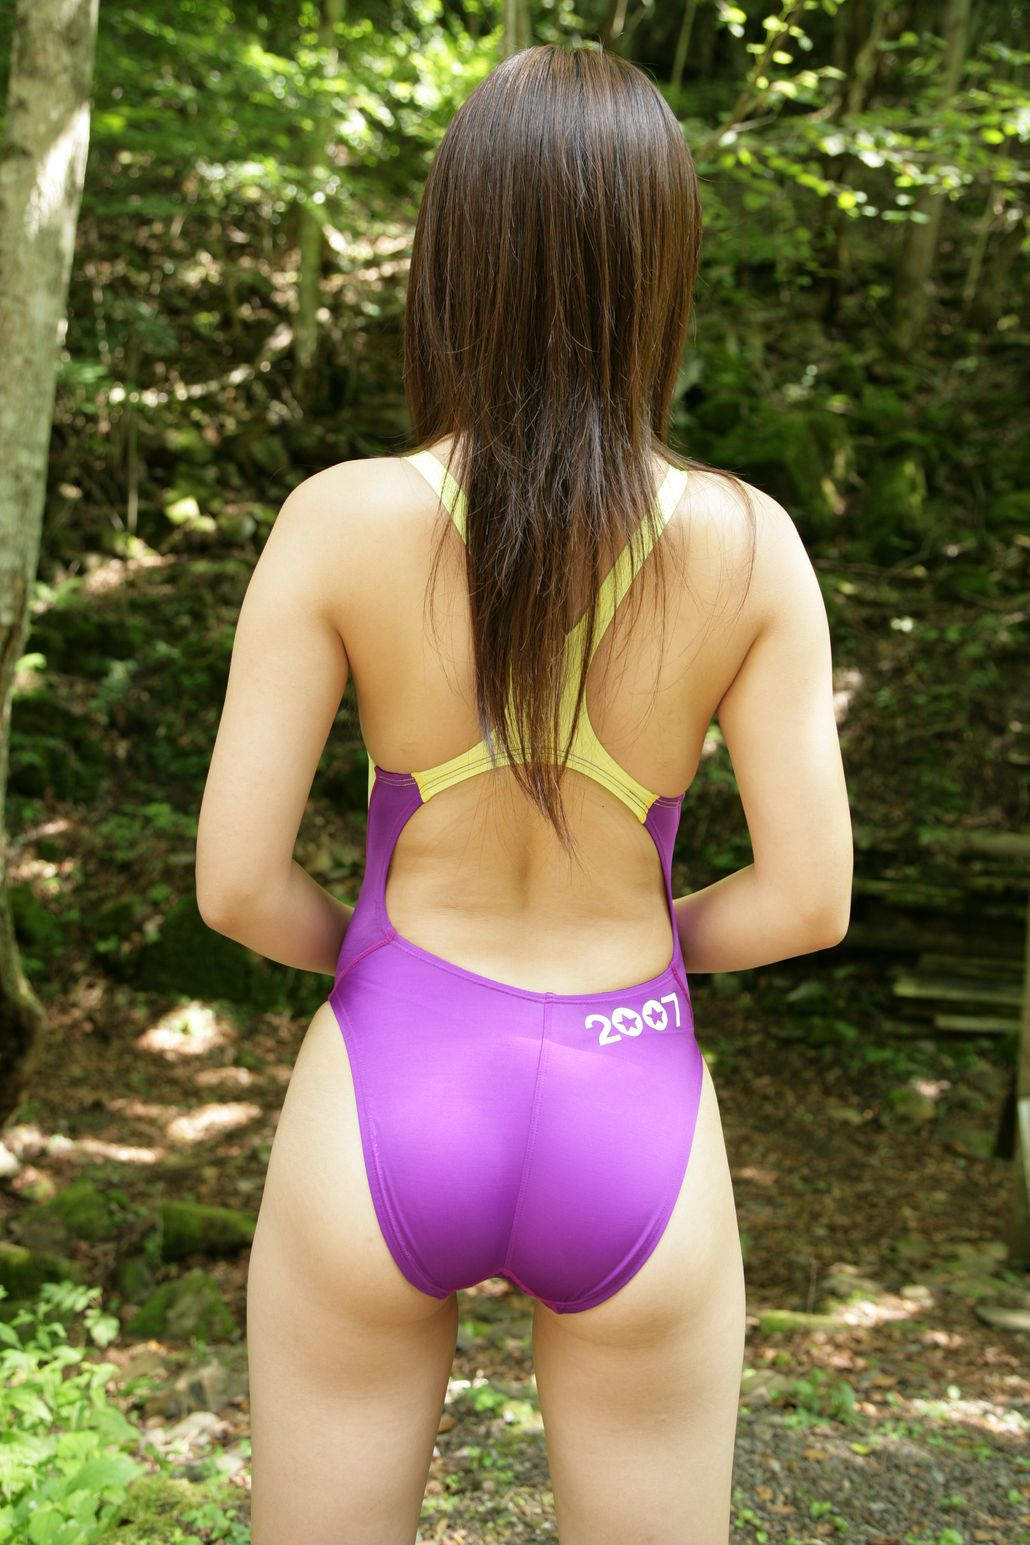 Asian One Piece Swimsuit 15